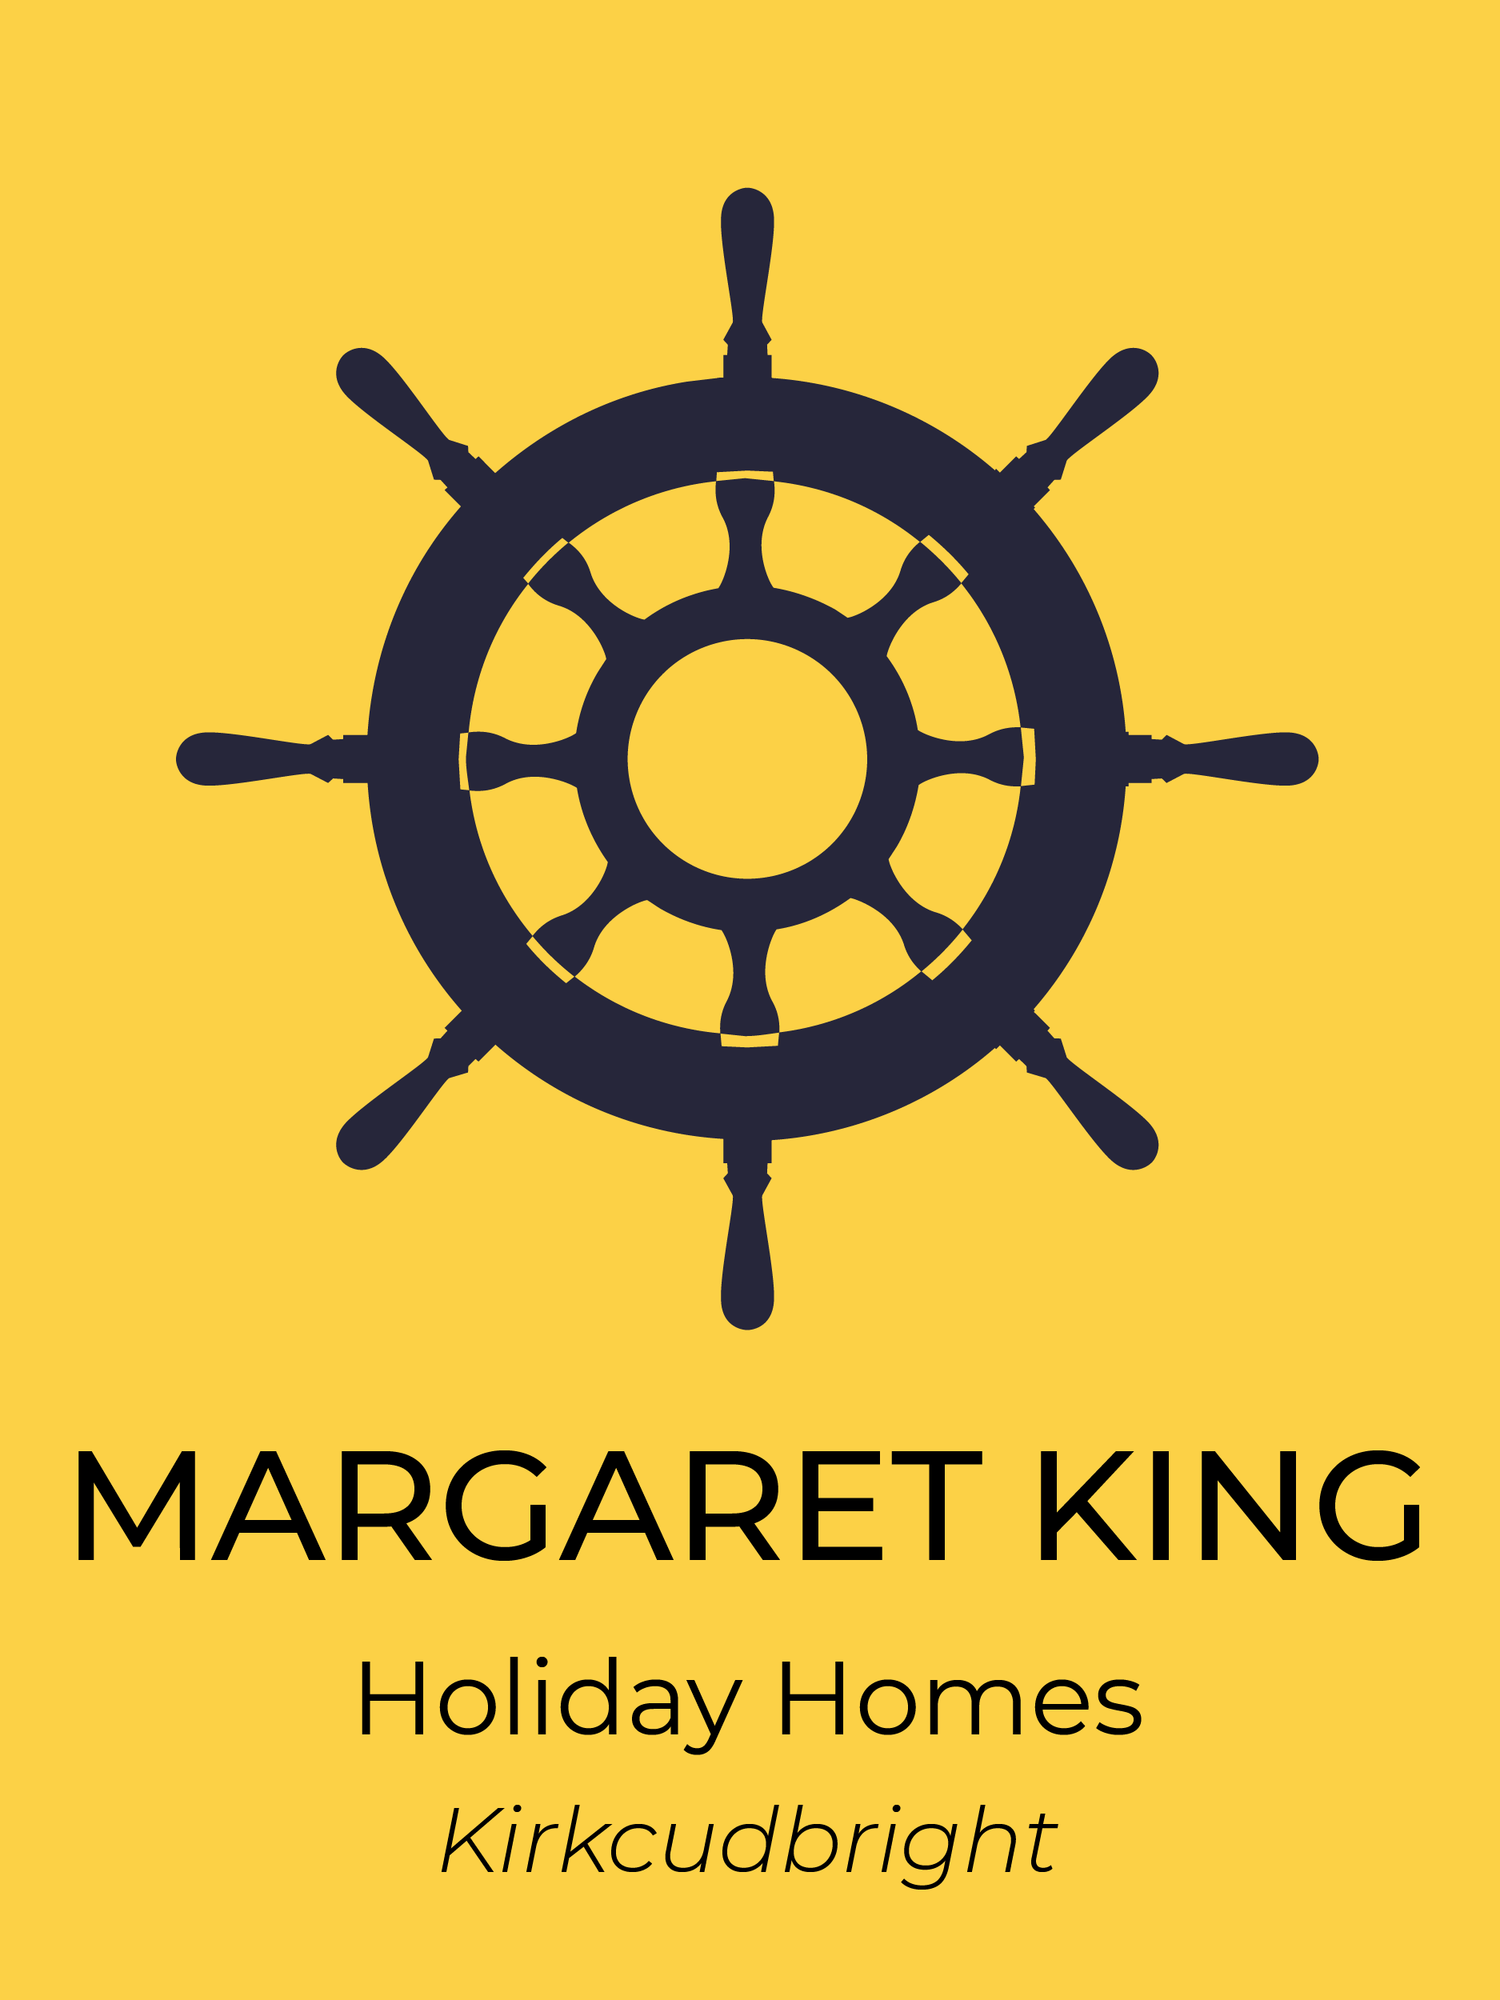 Margaret King Holiday Homes